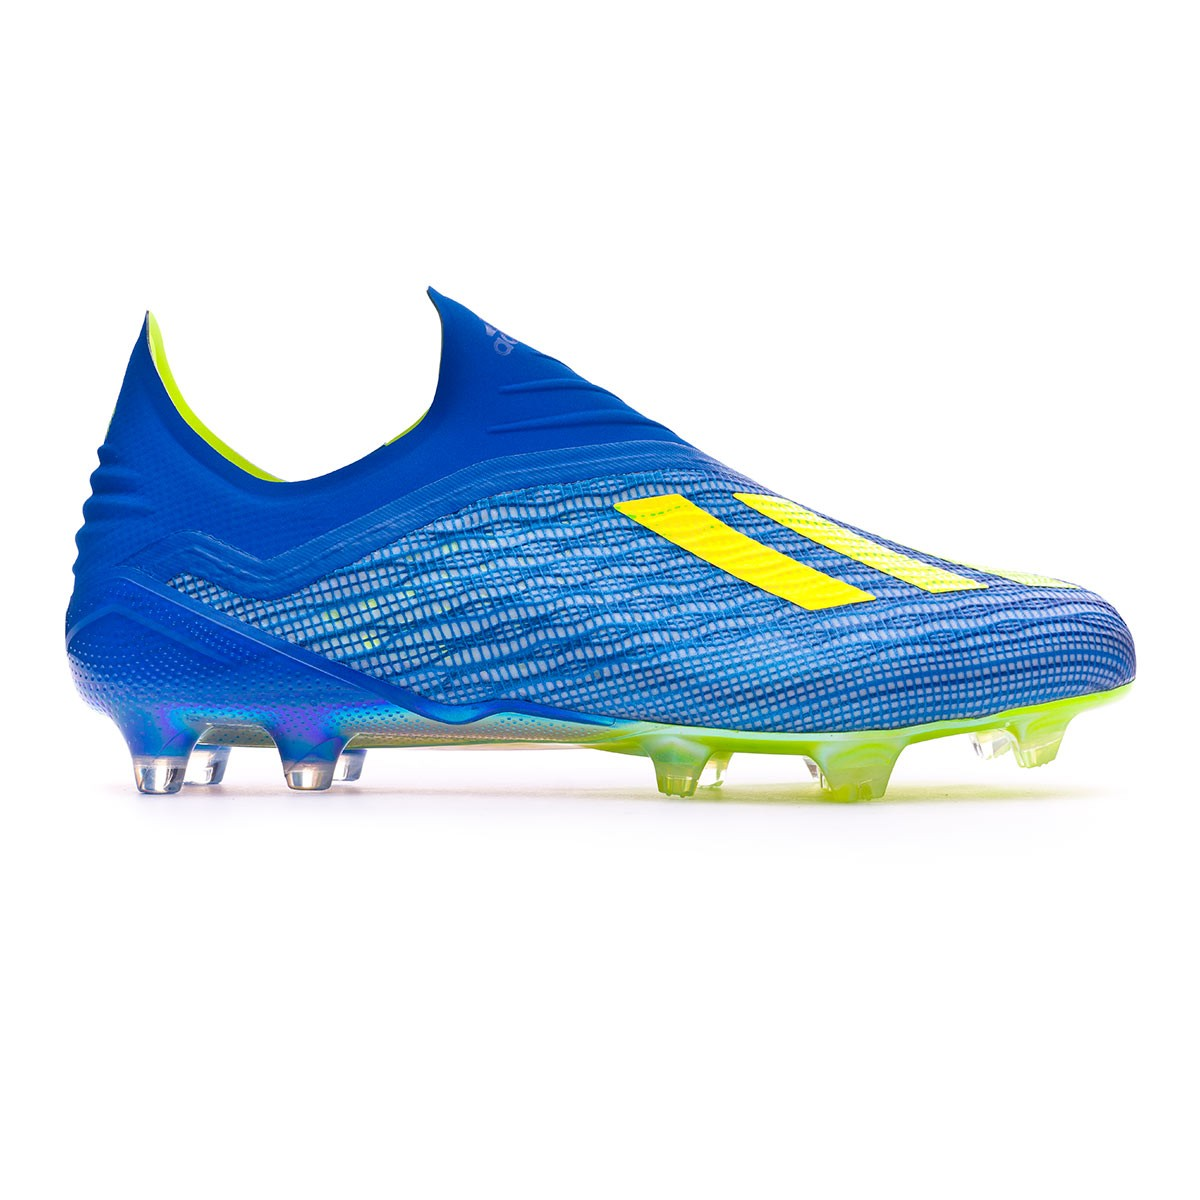 Boot adidas X 18+ FG Foot blue-Solar yellow-Black - Soloport